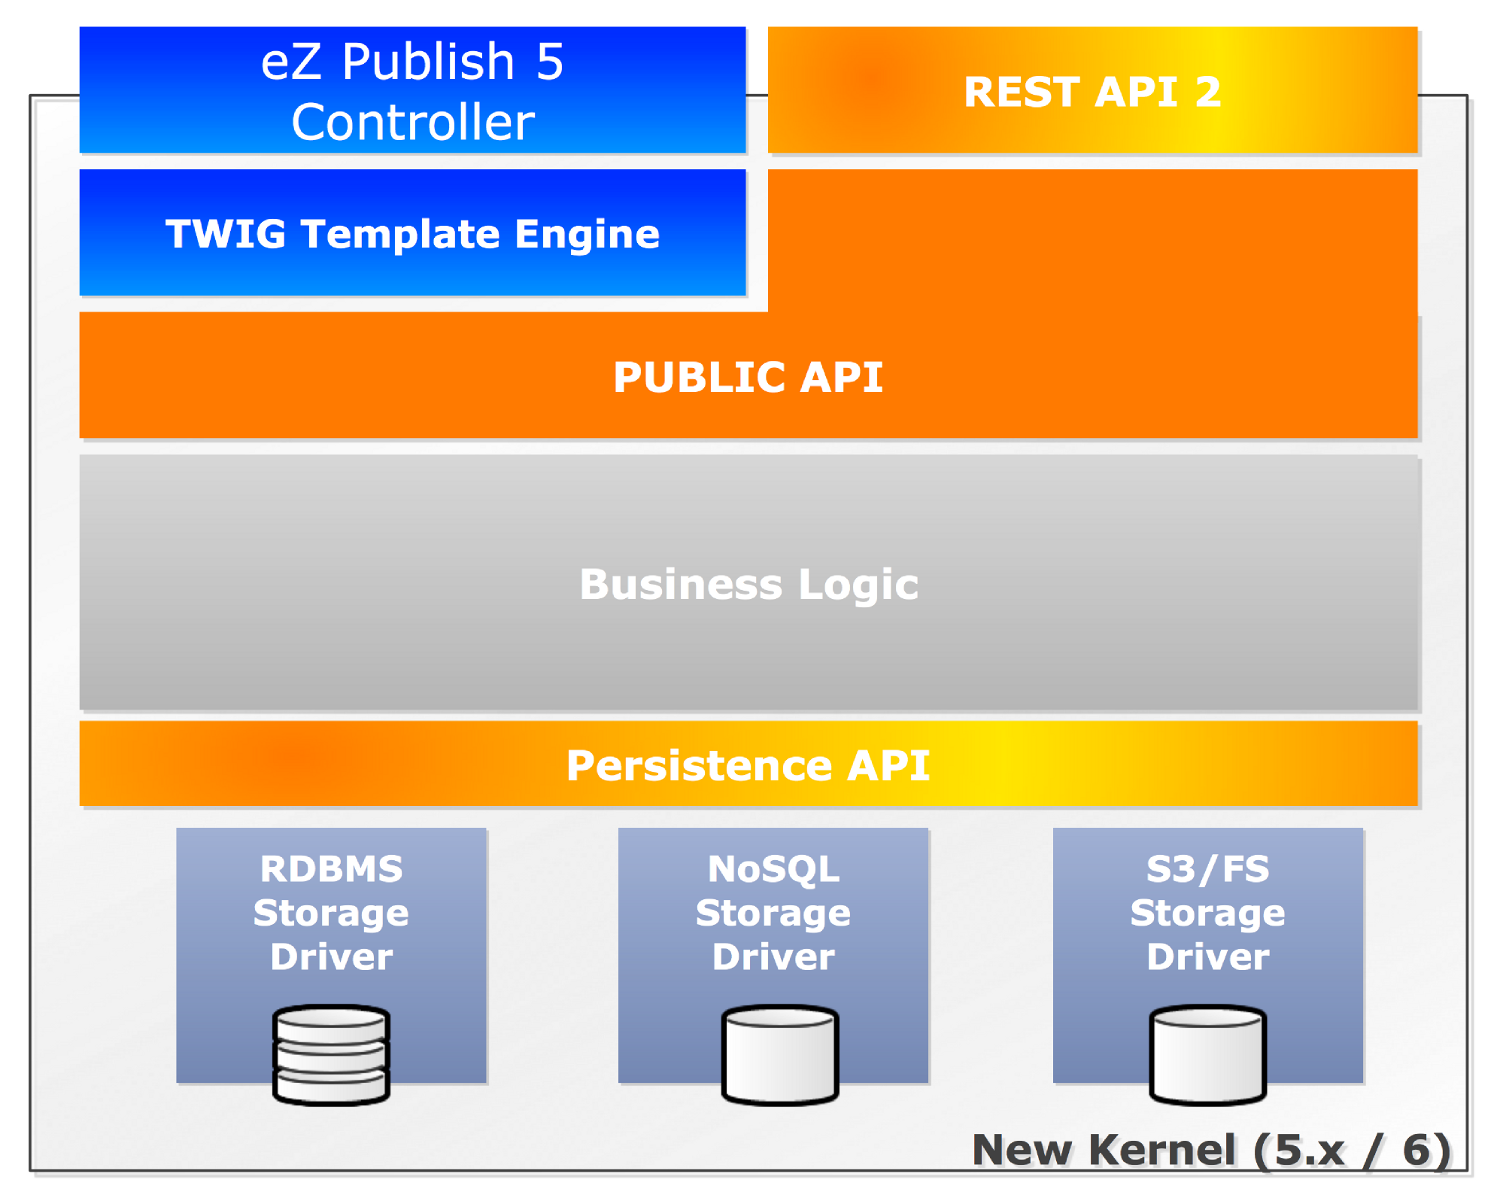 eZ Publish 5 architecture